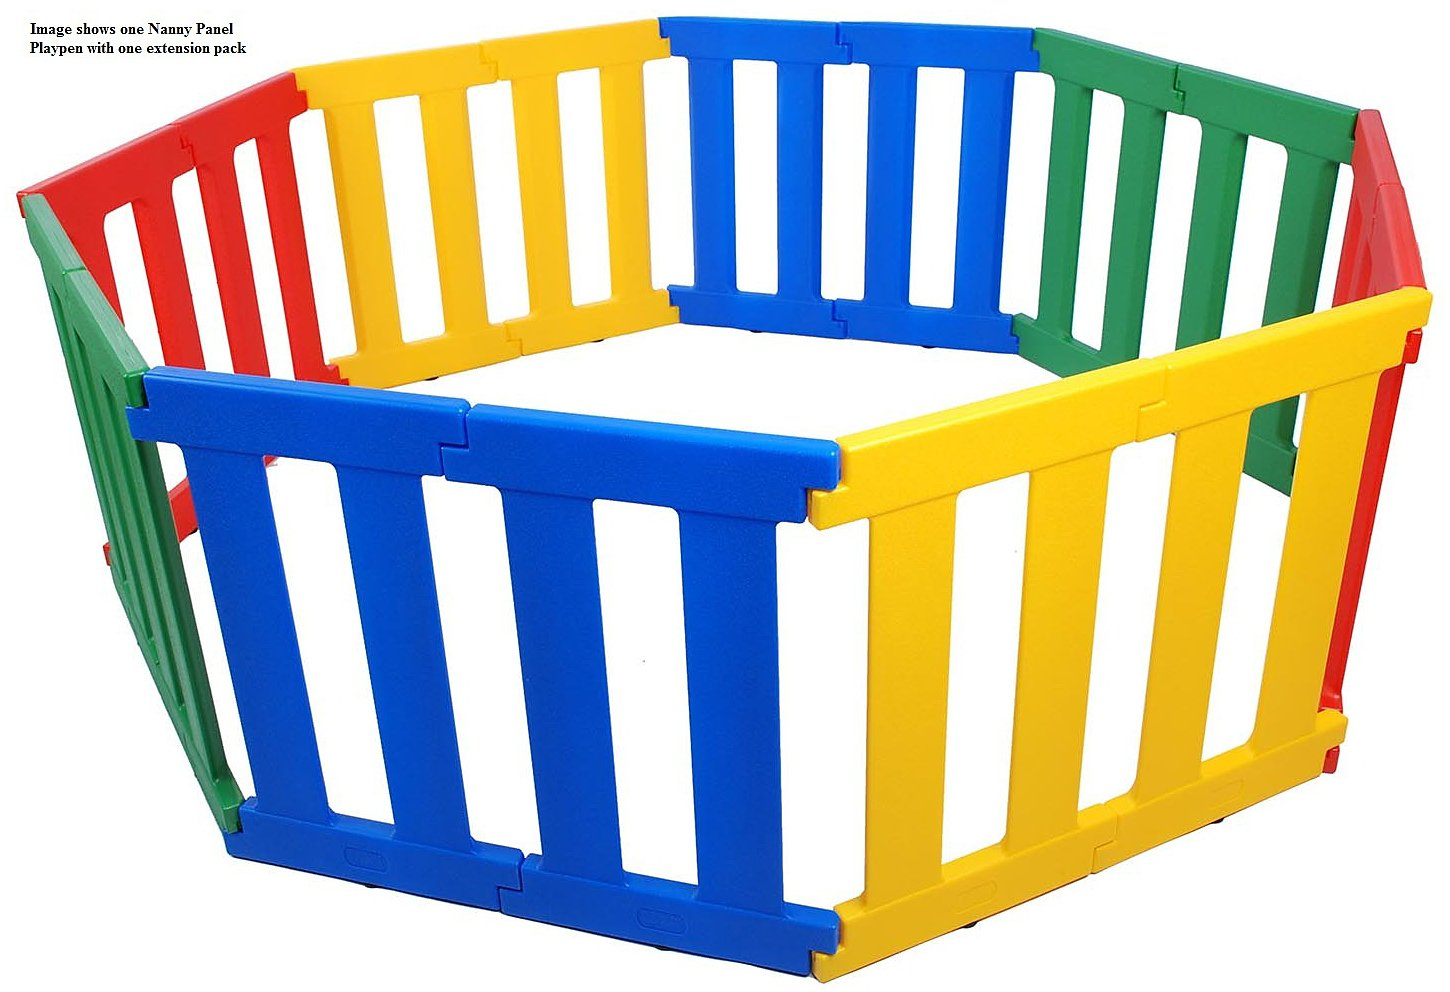 TikkTokk Nanny Panel Playpen Extension Pack (multi-Coloured) TikkTokk Extension Pack for the Nanny Panel Play Pen (TNP01C) - contains 4 panels each 38cm wide One extension pack will increase Playpen to 152cm x 152cm 2 year manufacturer's guarantee 2